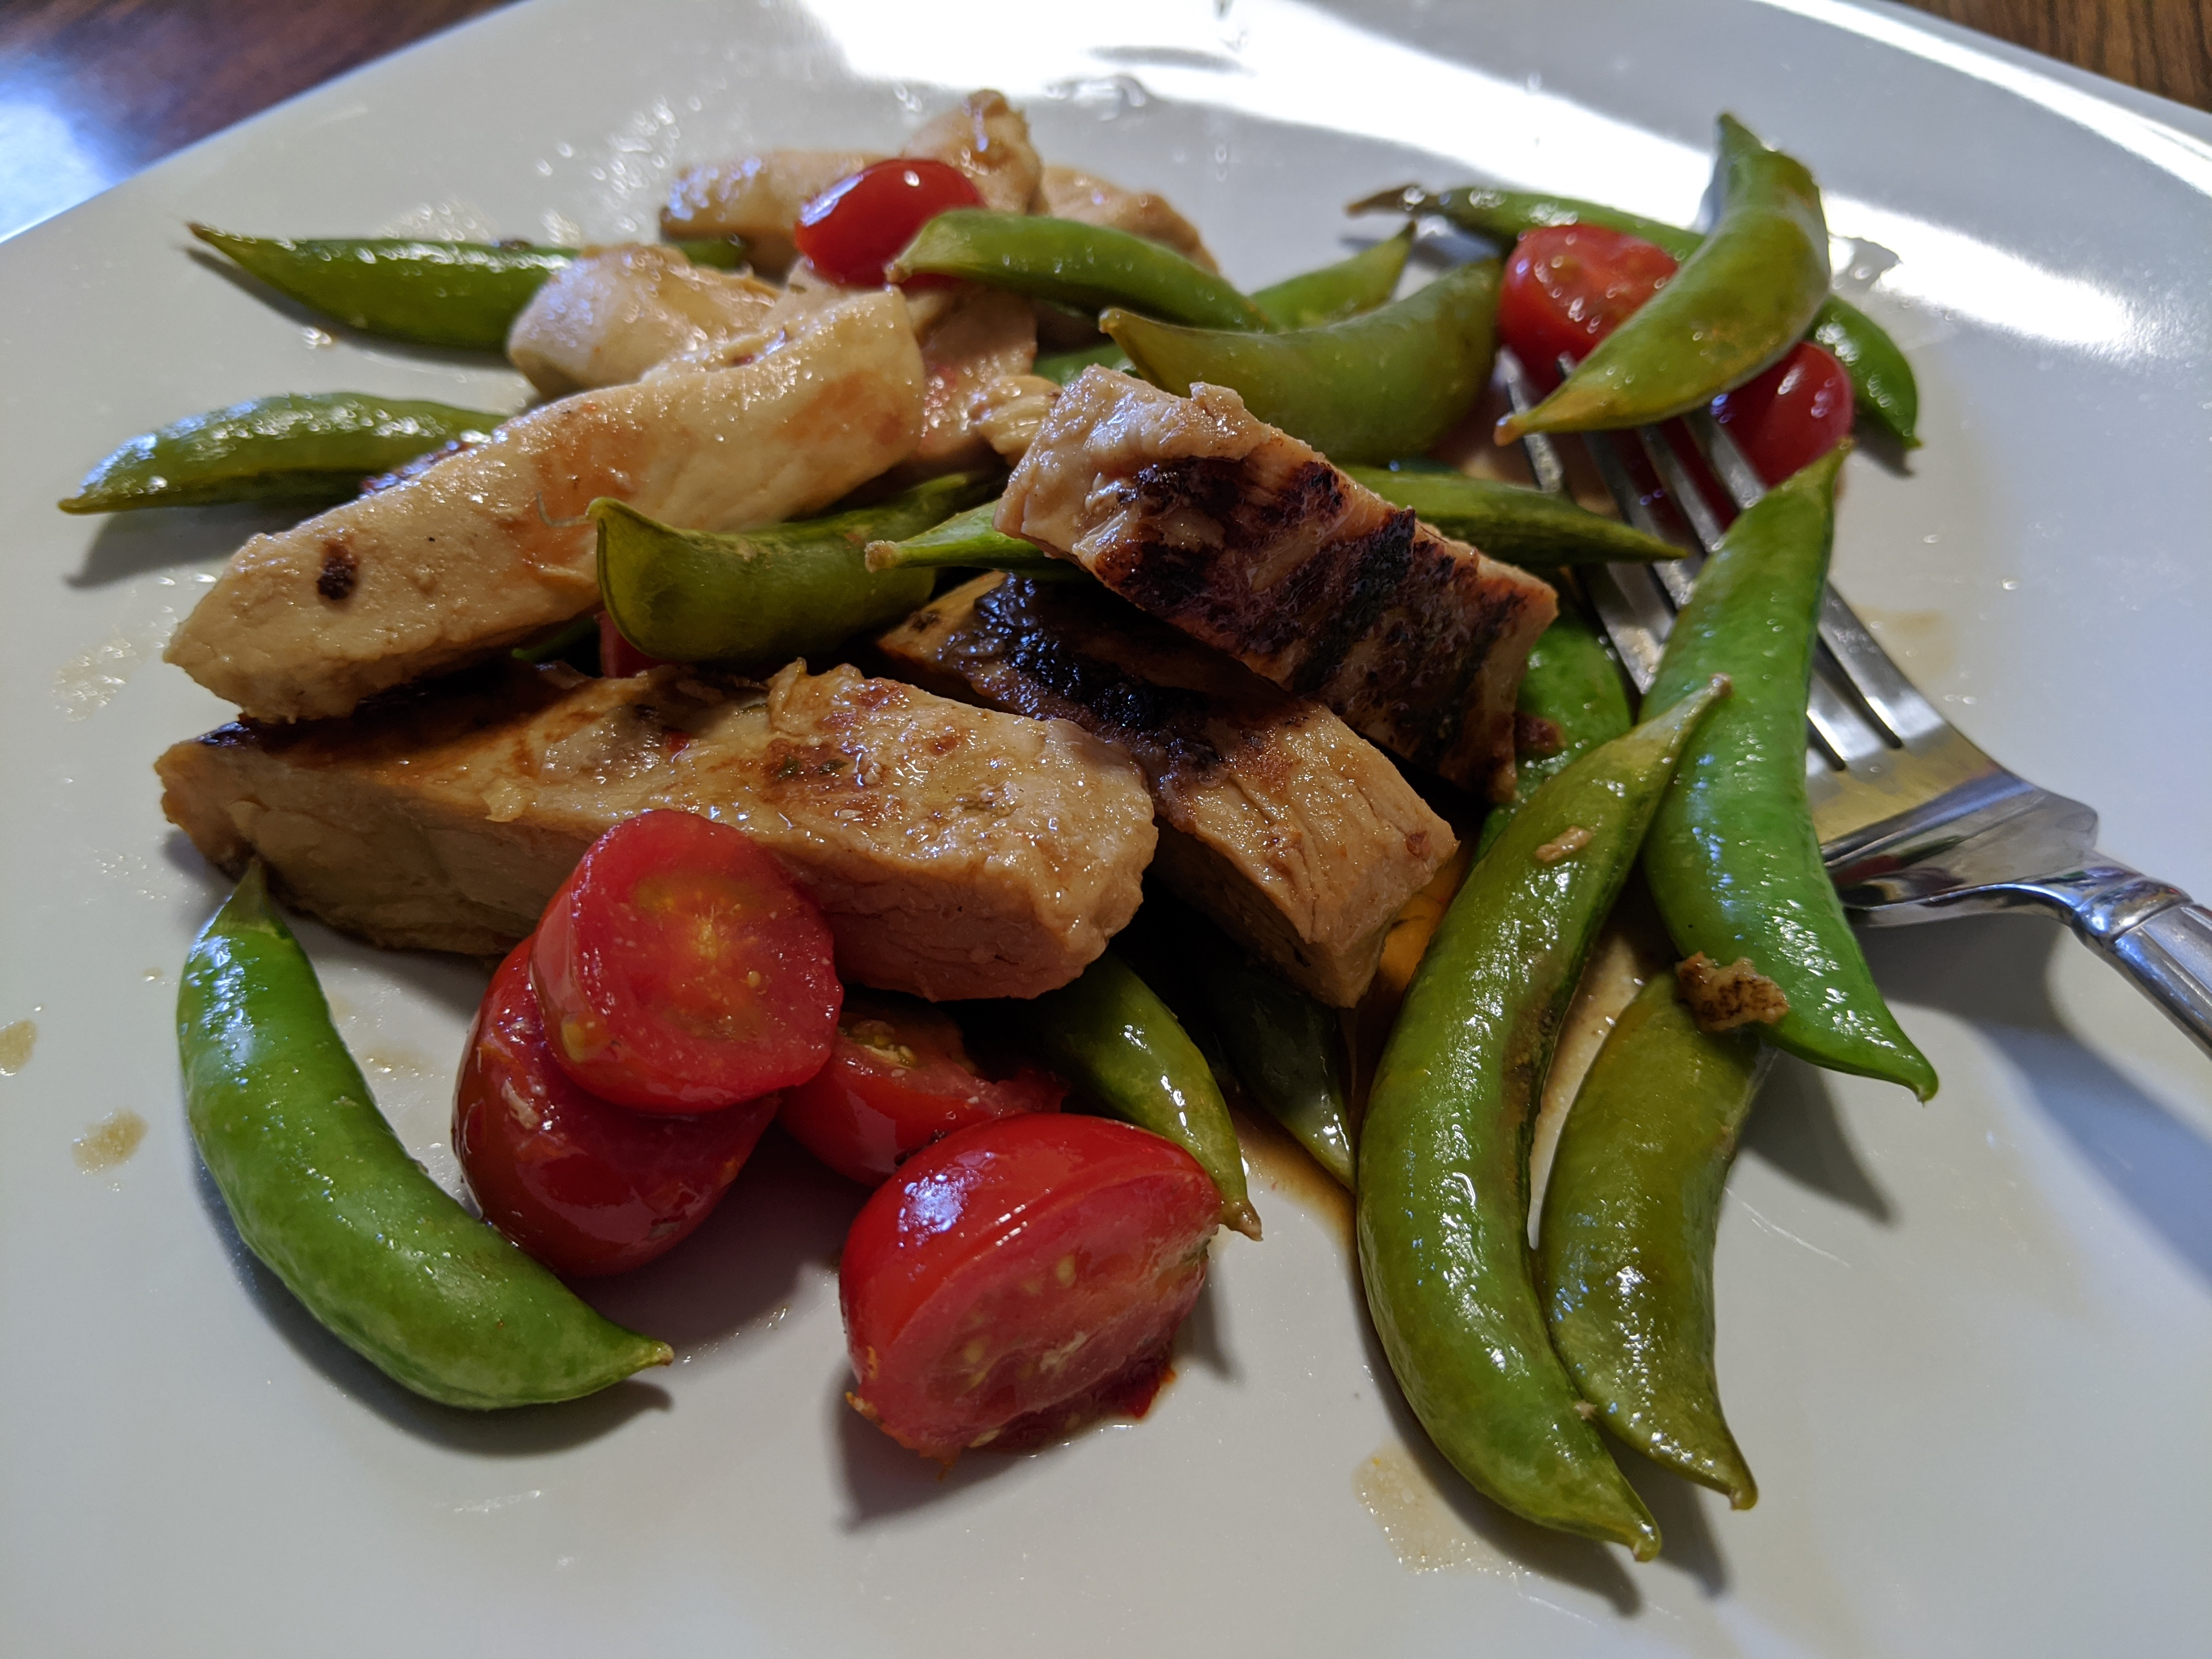 Image of Balsamic Chicken and Vegetables